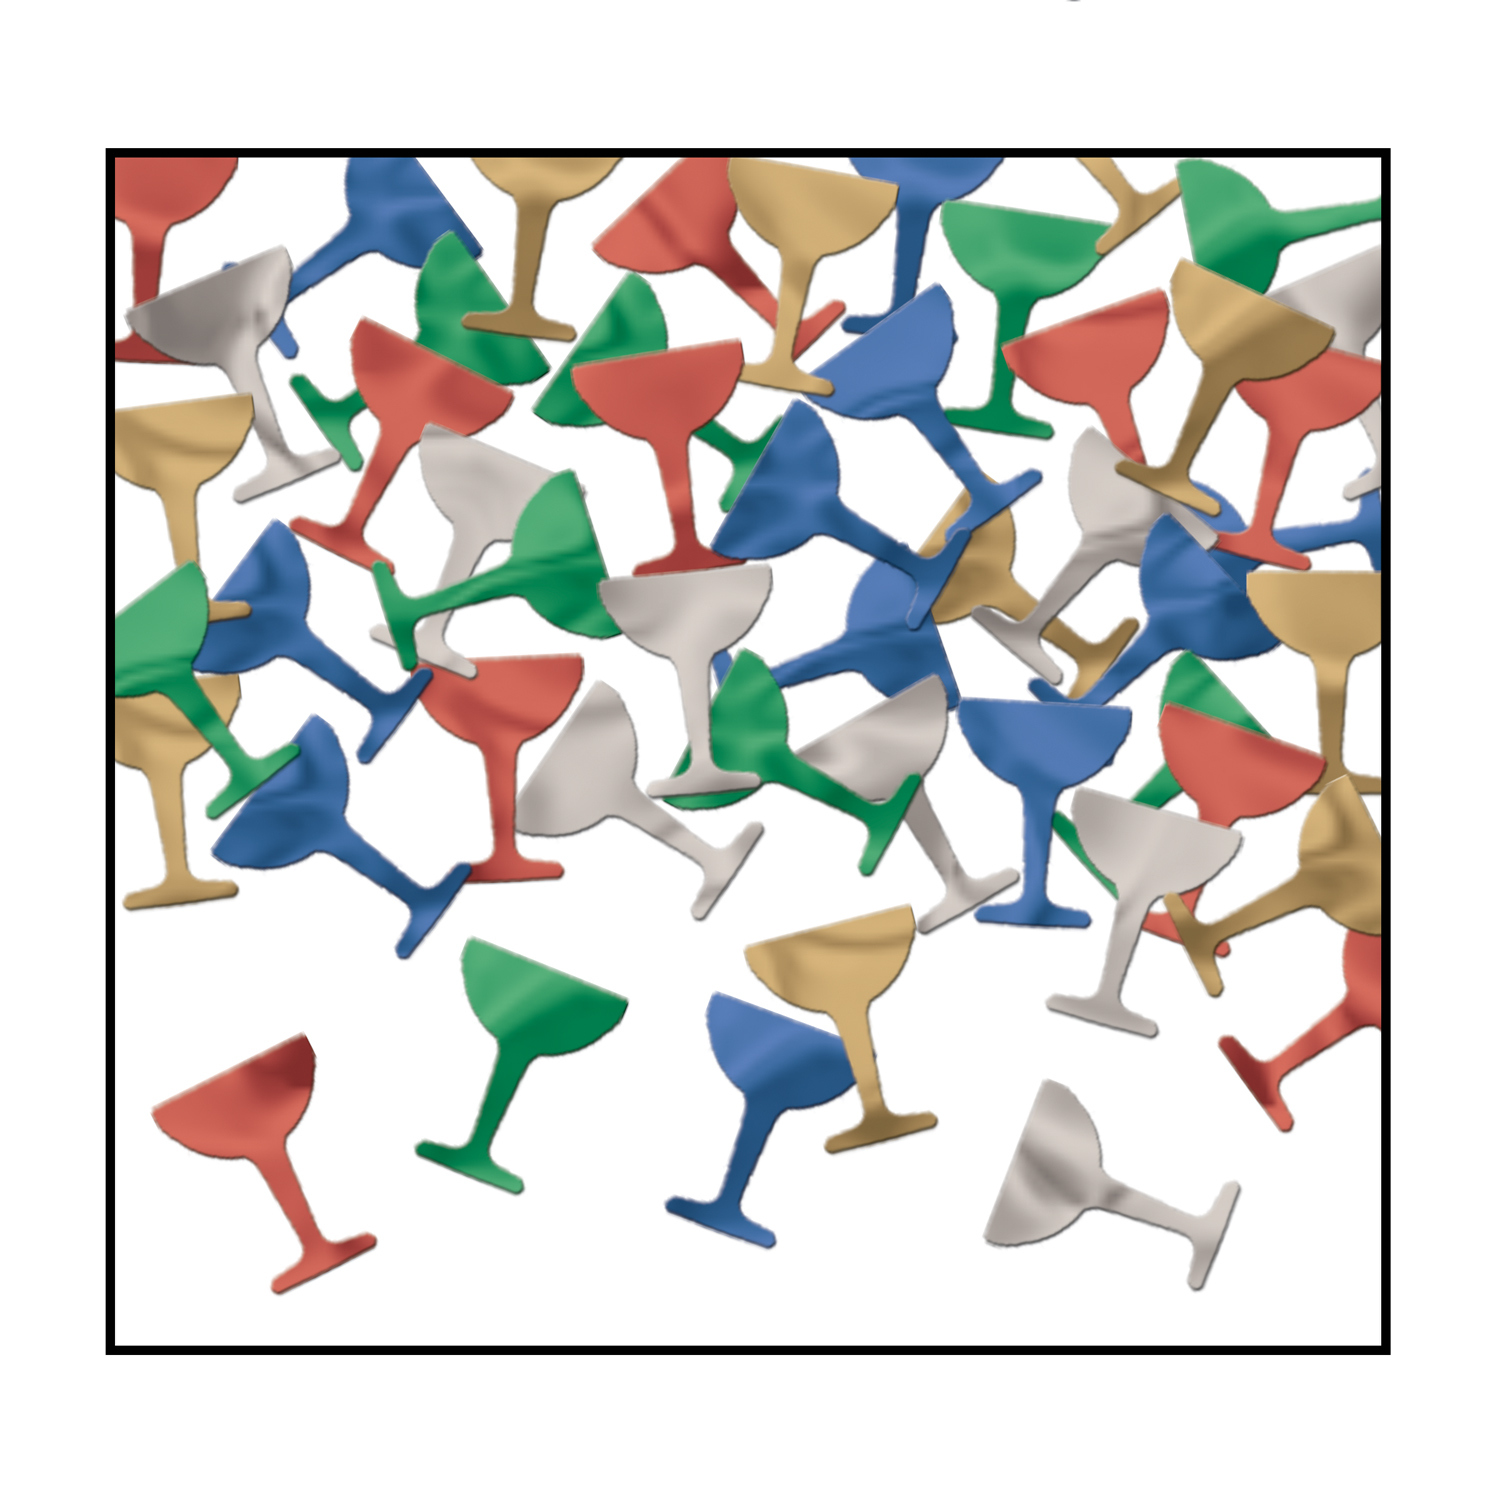 Fanci-Fetti Goblets (Pack of 12) fanci-fetti, goblets, confetti, assorted, colors, decoration, party, new, year, eve, birthday, graduation, pack,